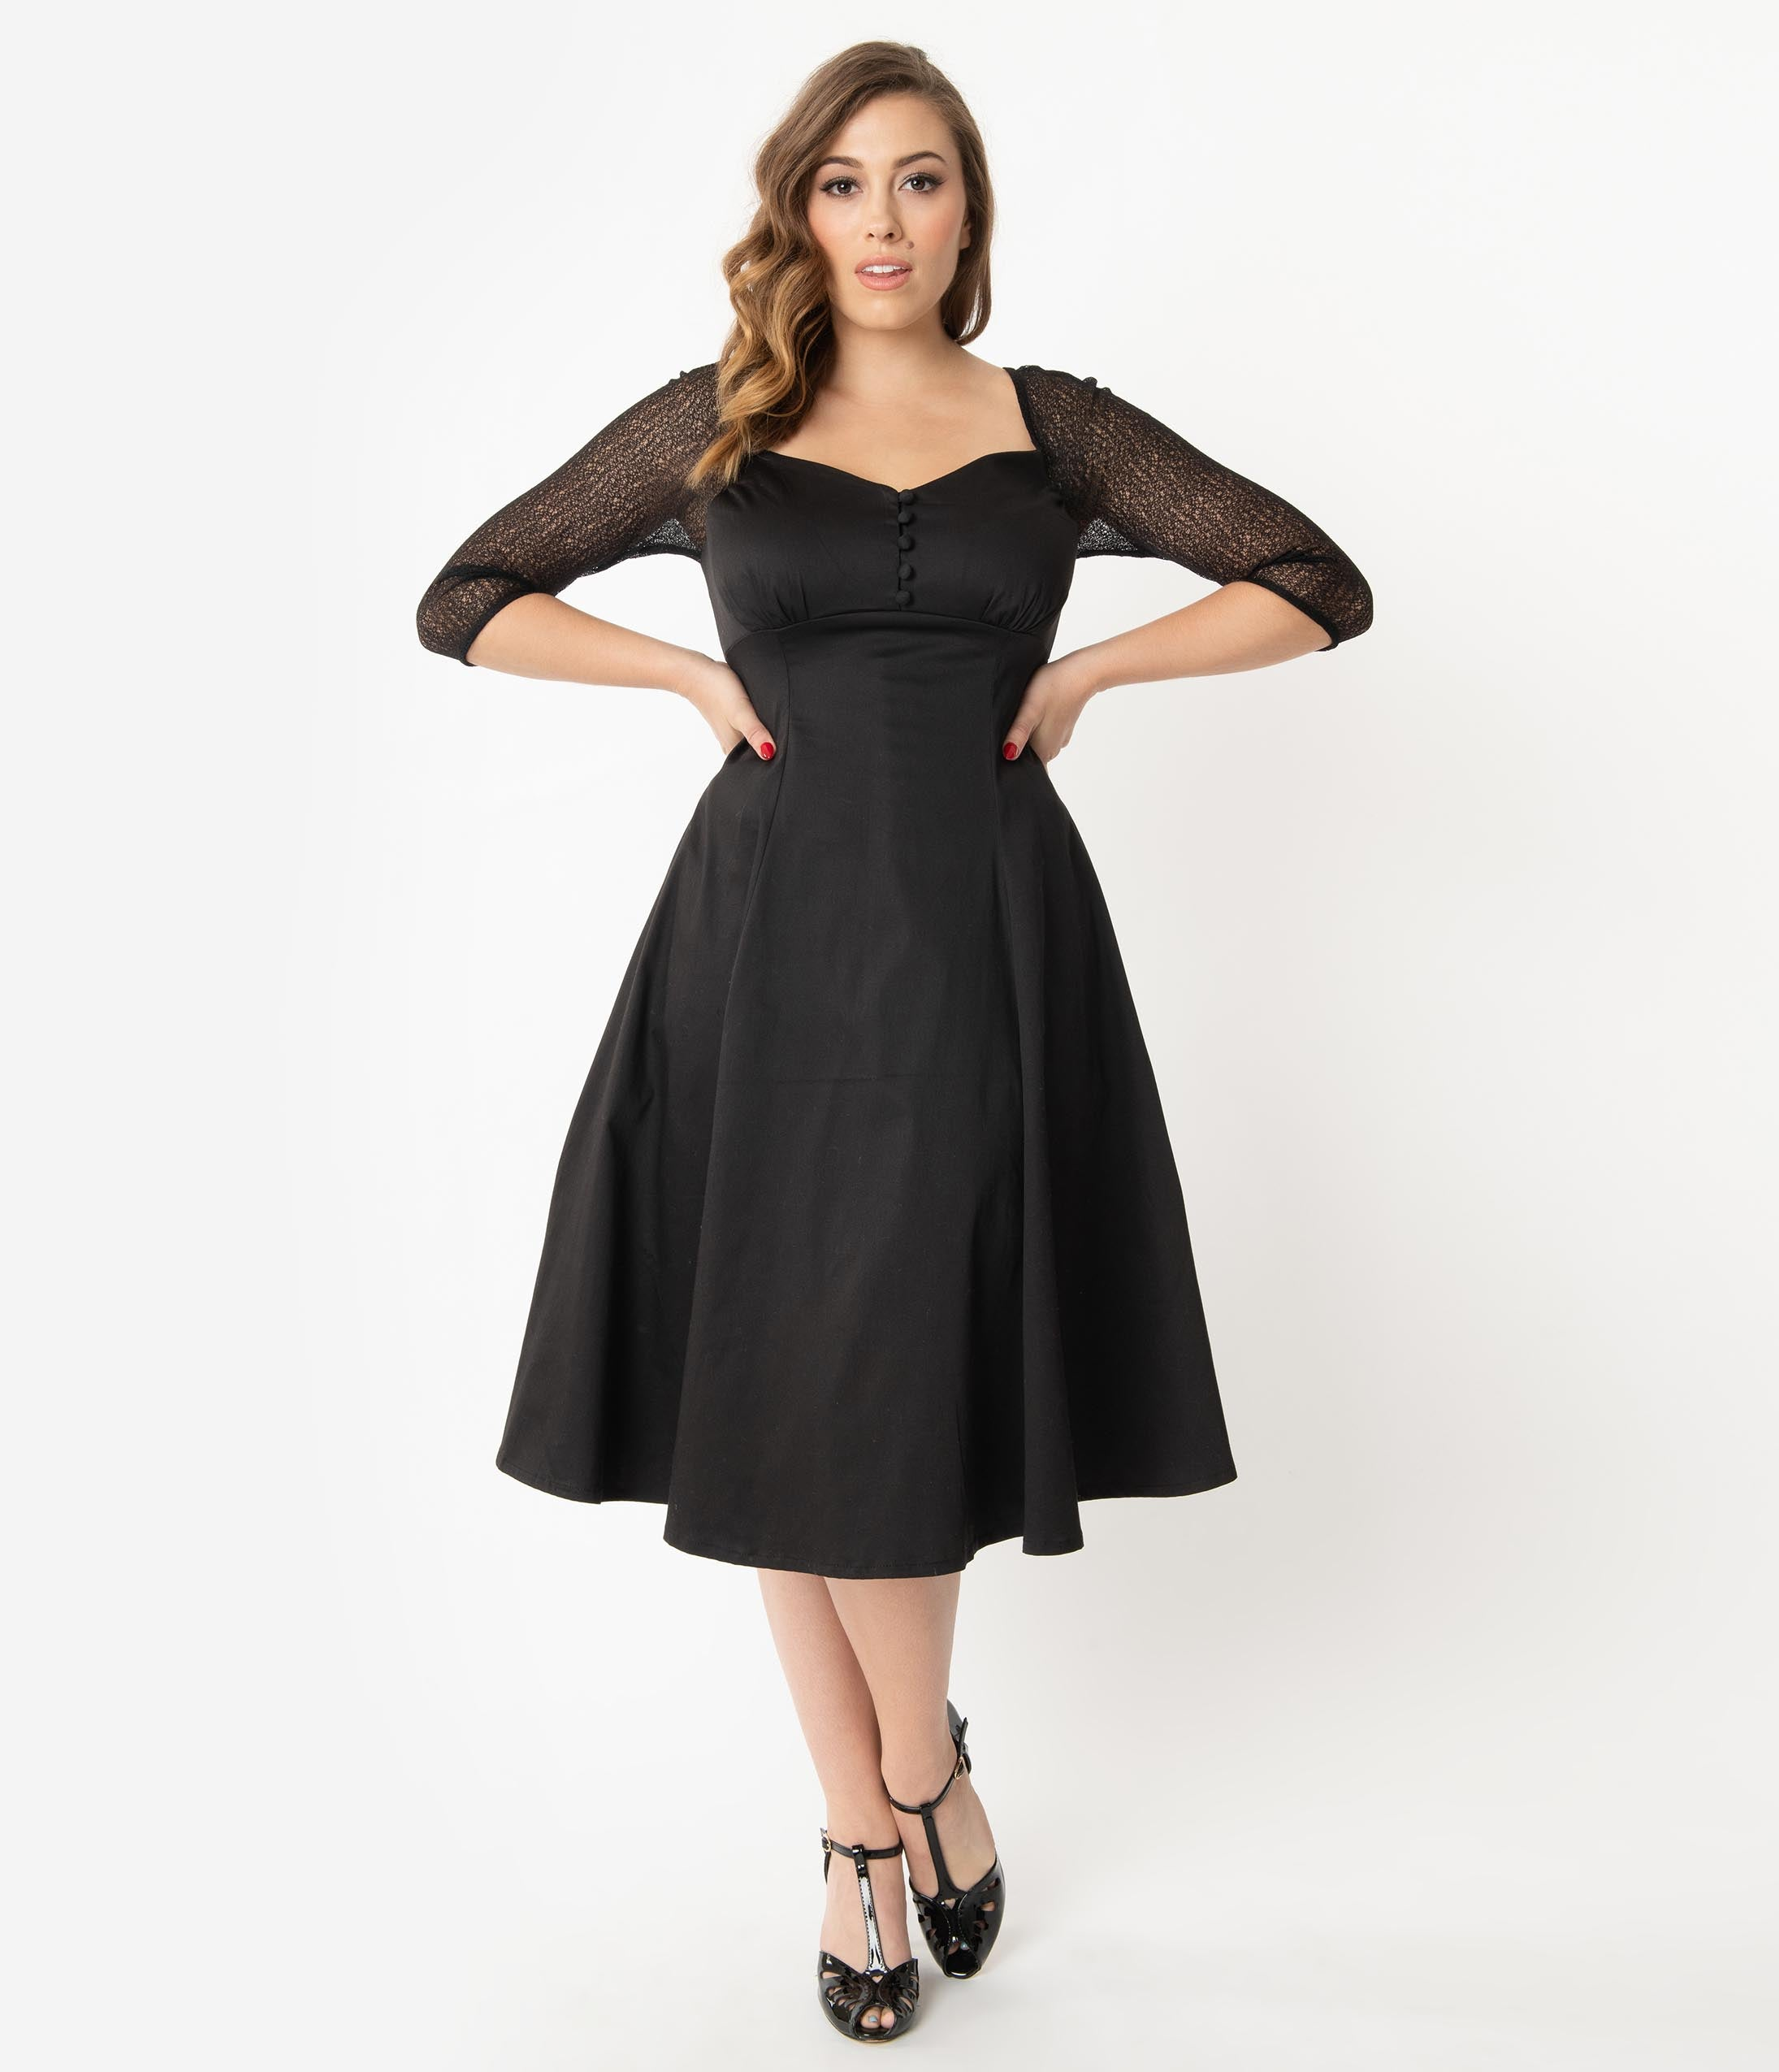 1940s Cocktail Dresses, Party Dresses Retro Style Black Charline Swing Dress $78.00 AT vintagedancer.com